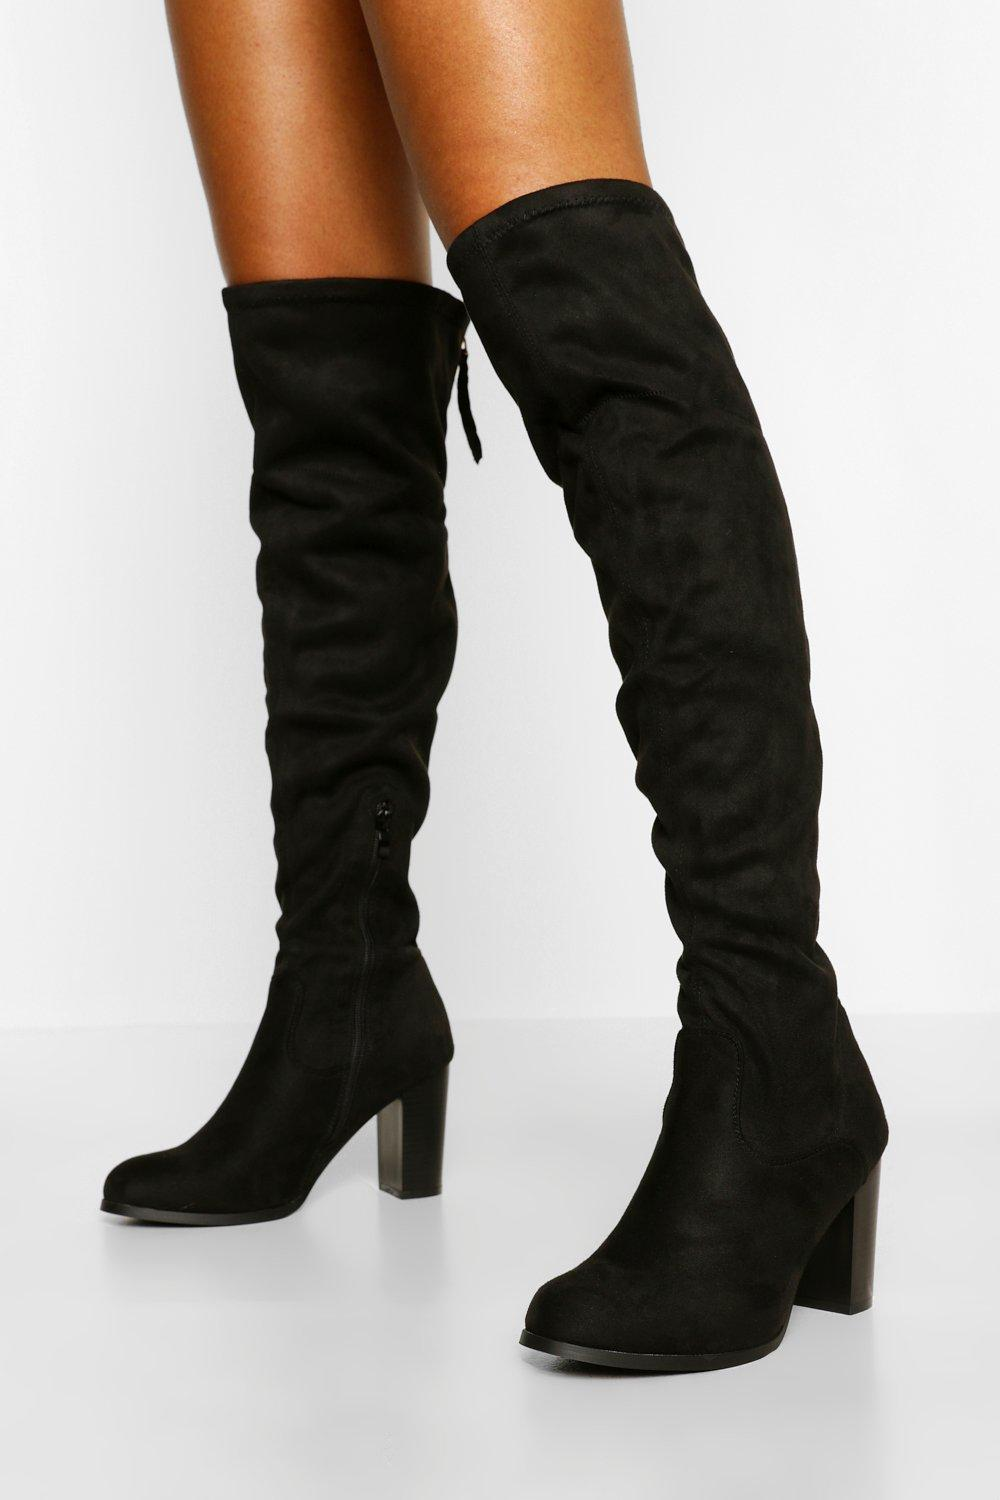 Vintage Boots, Retro Boots Womens Block Heel Zip Back Over The Knee Boots - Black - 10 $49.00 AT vintagedancer.com